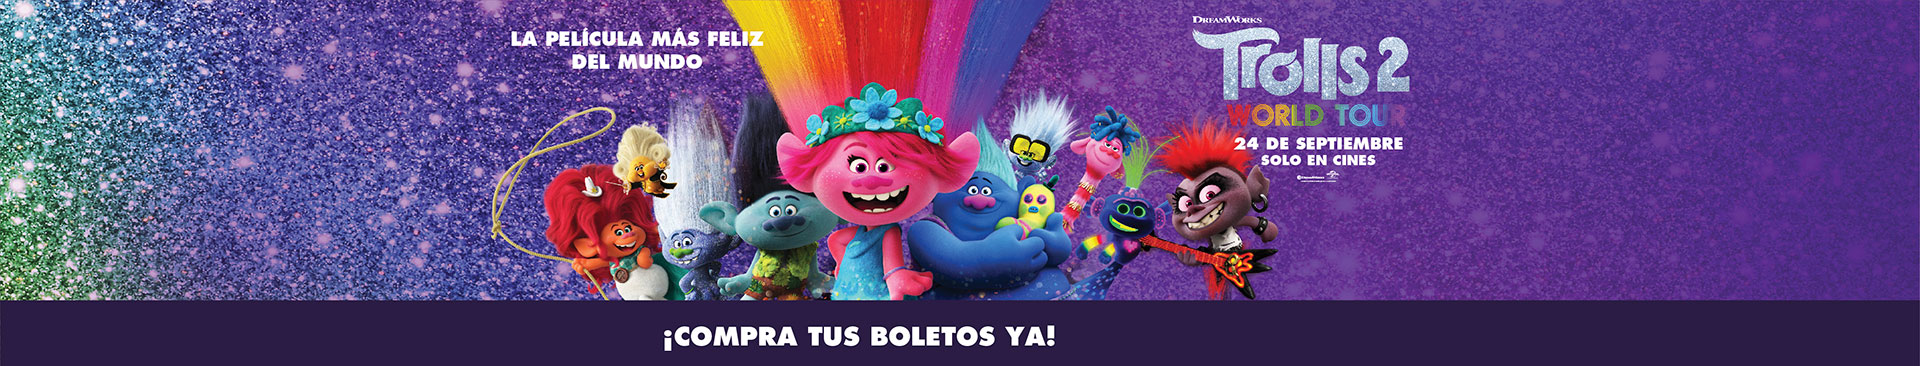 Estreno: Trolls 2 World Tour